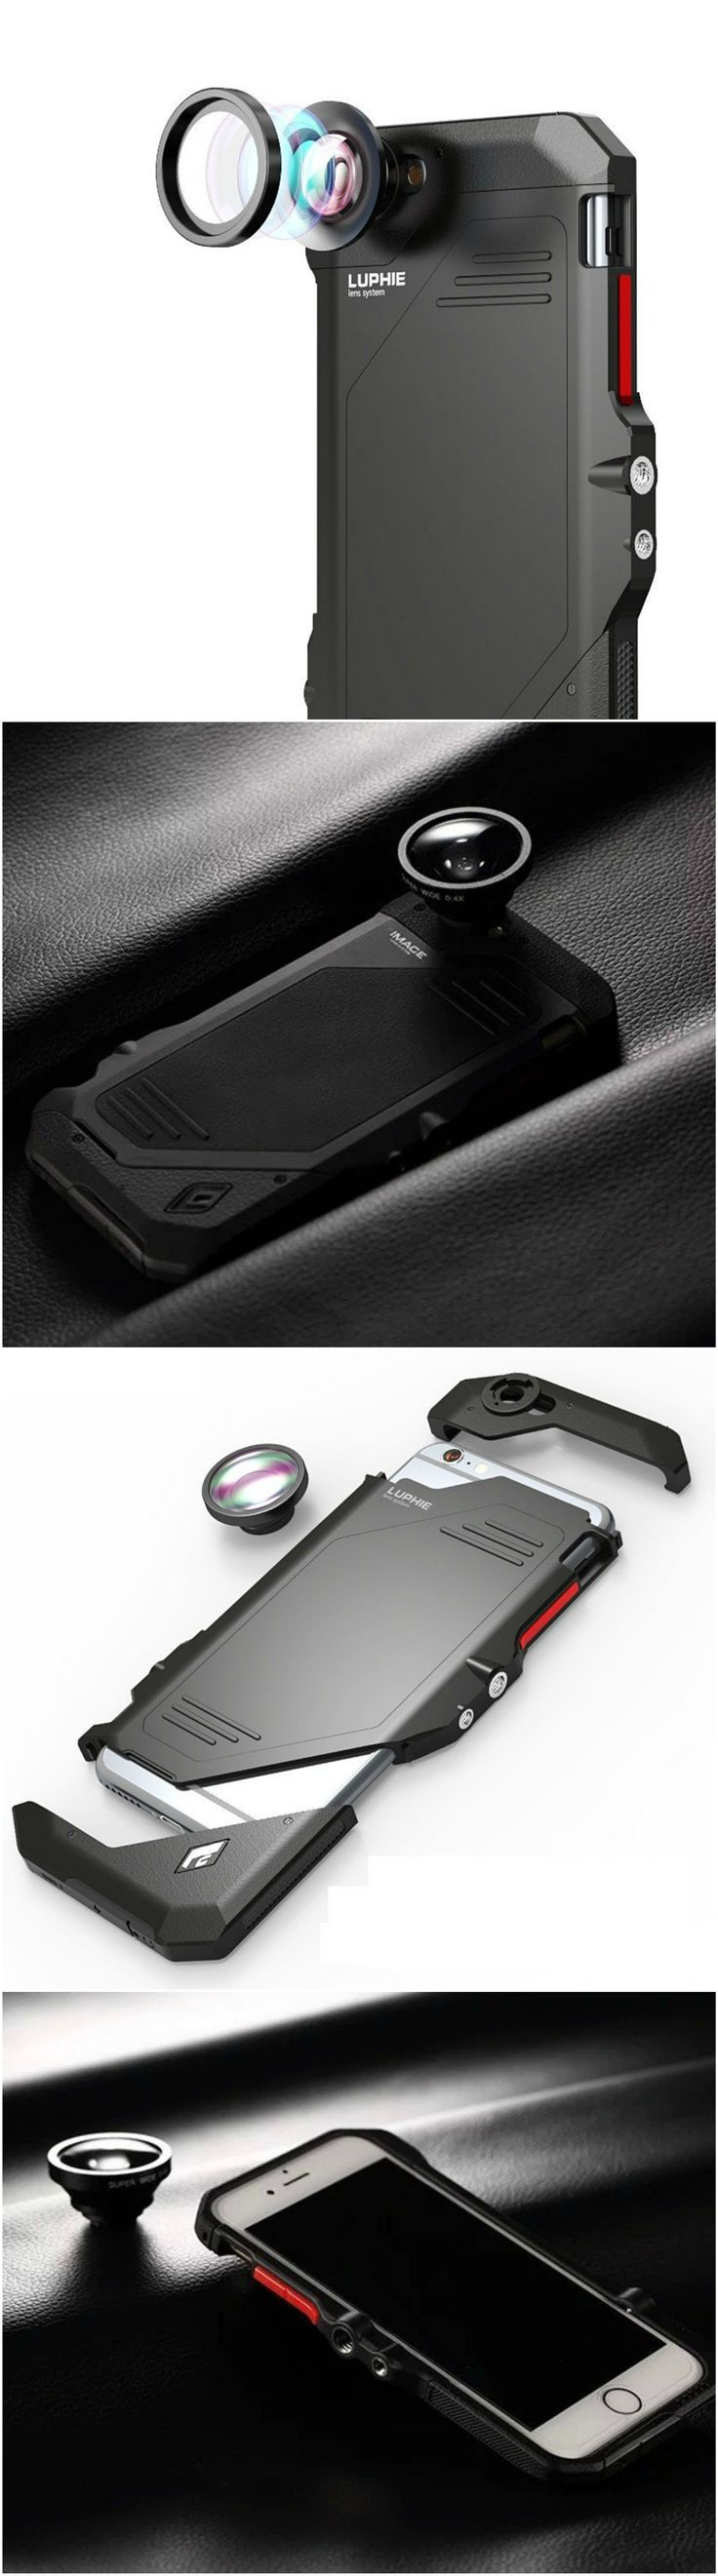 Newest iPhone 6 6S Plus fashion fish eye wide angle lens slim case with style for the savvy users. Fits well into workout and gym clothes. Great gift home accessory products for Apple iPhone 7 Plus owners, gizmos lovers, current smartphone and cellphone owners, shoppers who o are active in health and fitness and travel  #tech